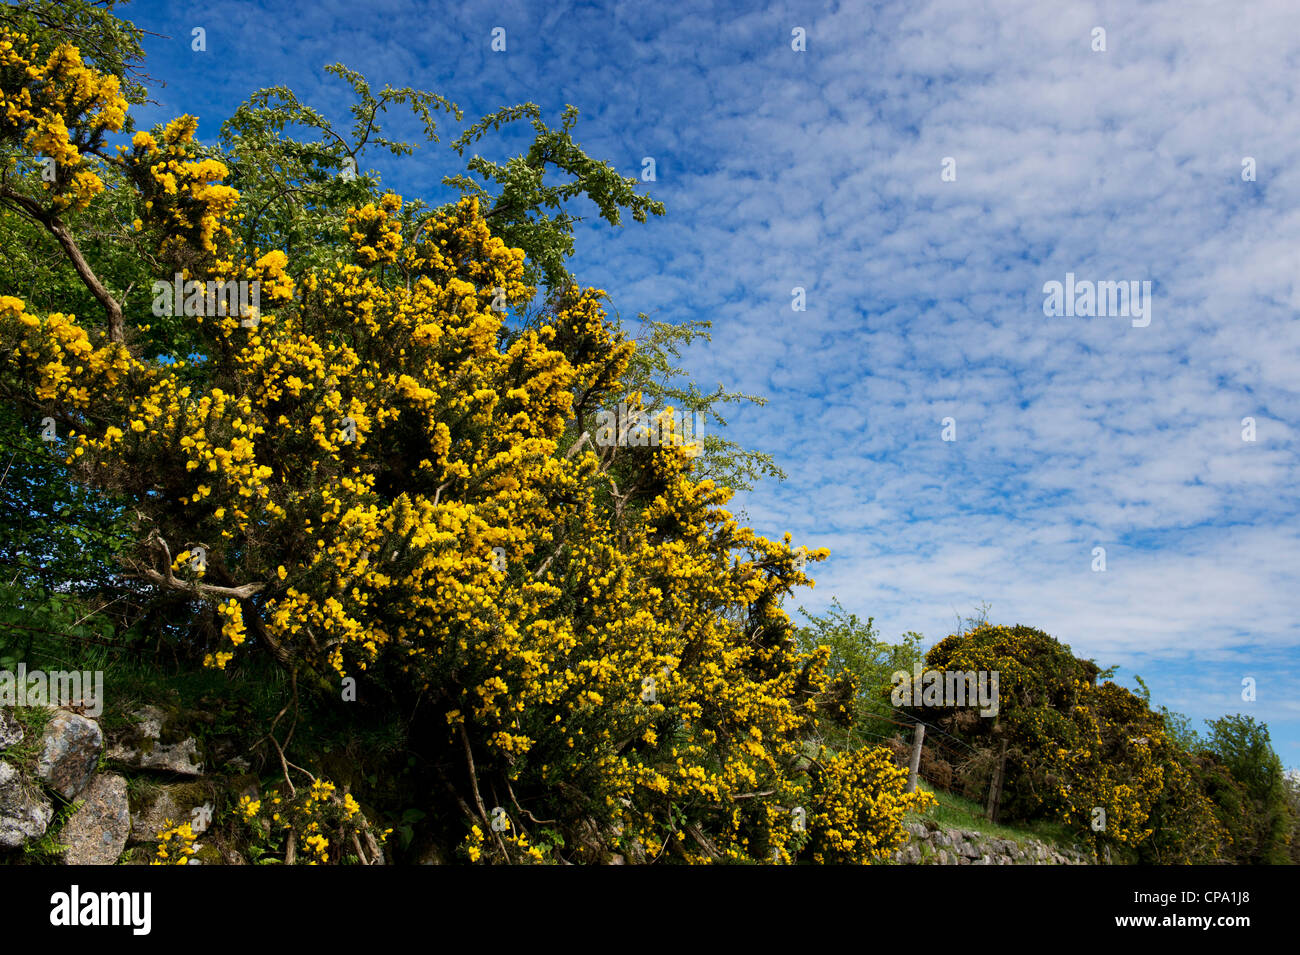 Ulex europaeus. Flowering gorse in the Devon countryside. UK - Stock Image